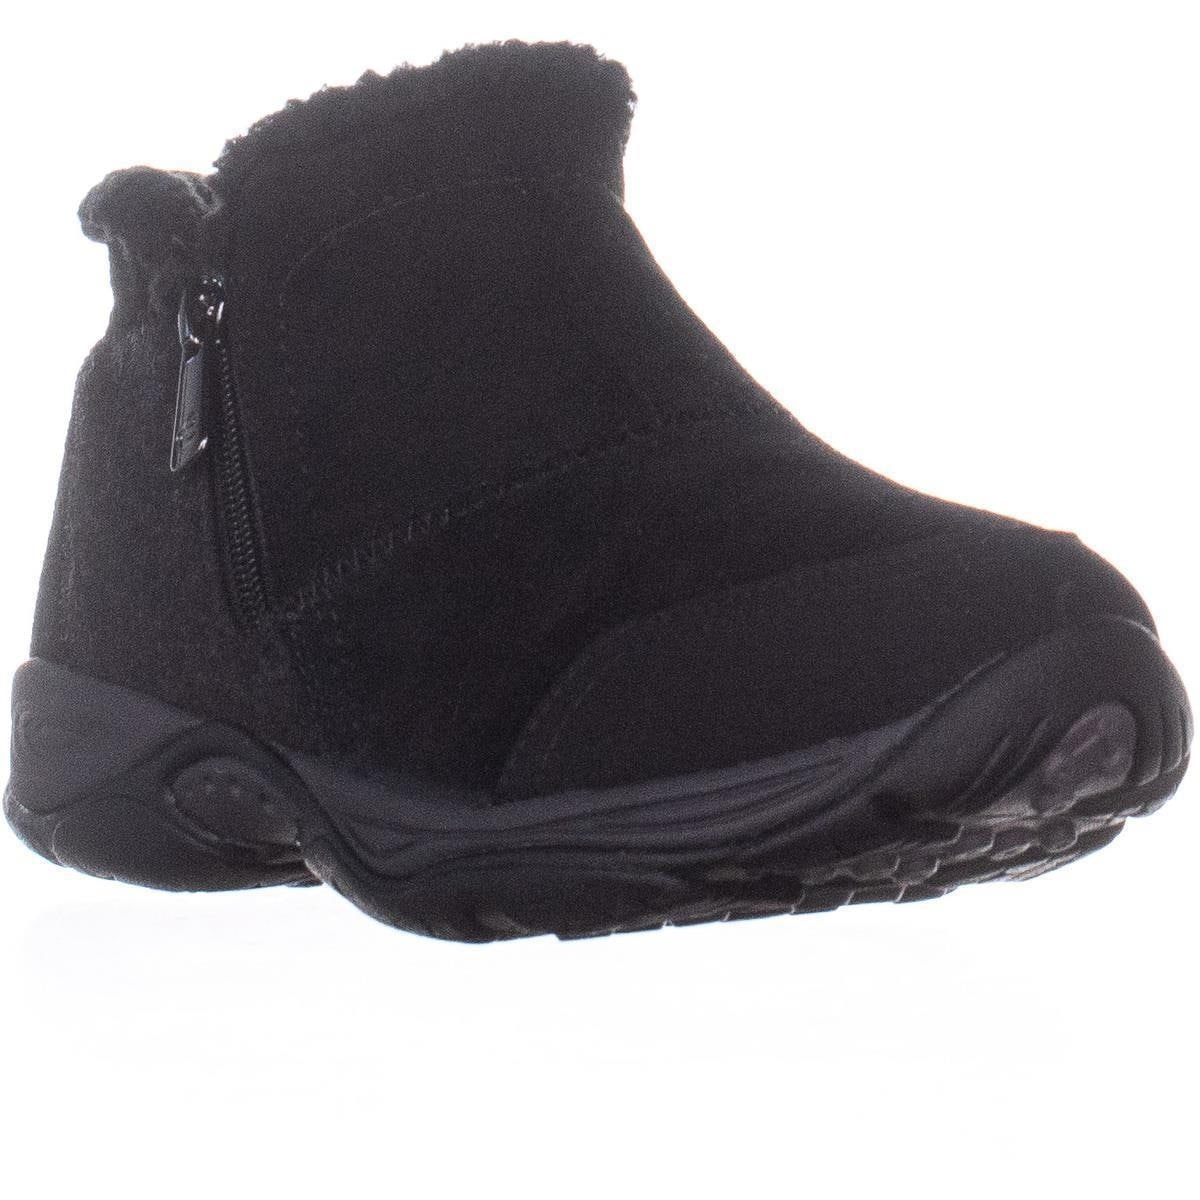 b786b602a Shop Easy Spirit Embark Flat Comfort Ankle Boots, Black Suede - On Sale -  Free Shipping Today - Overstock - 26872903 - 8.5 US